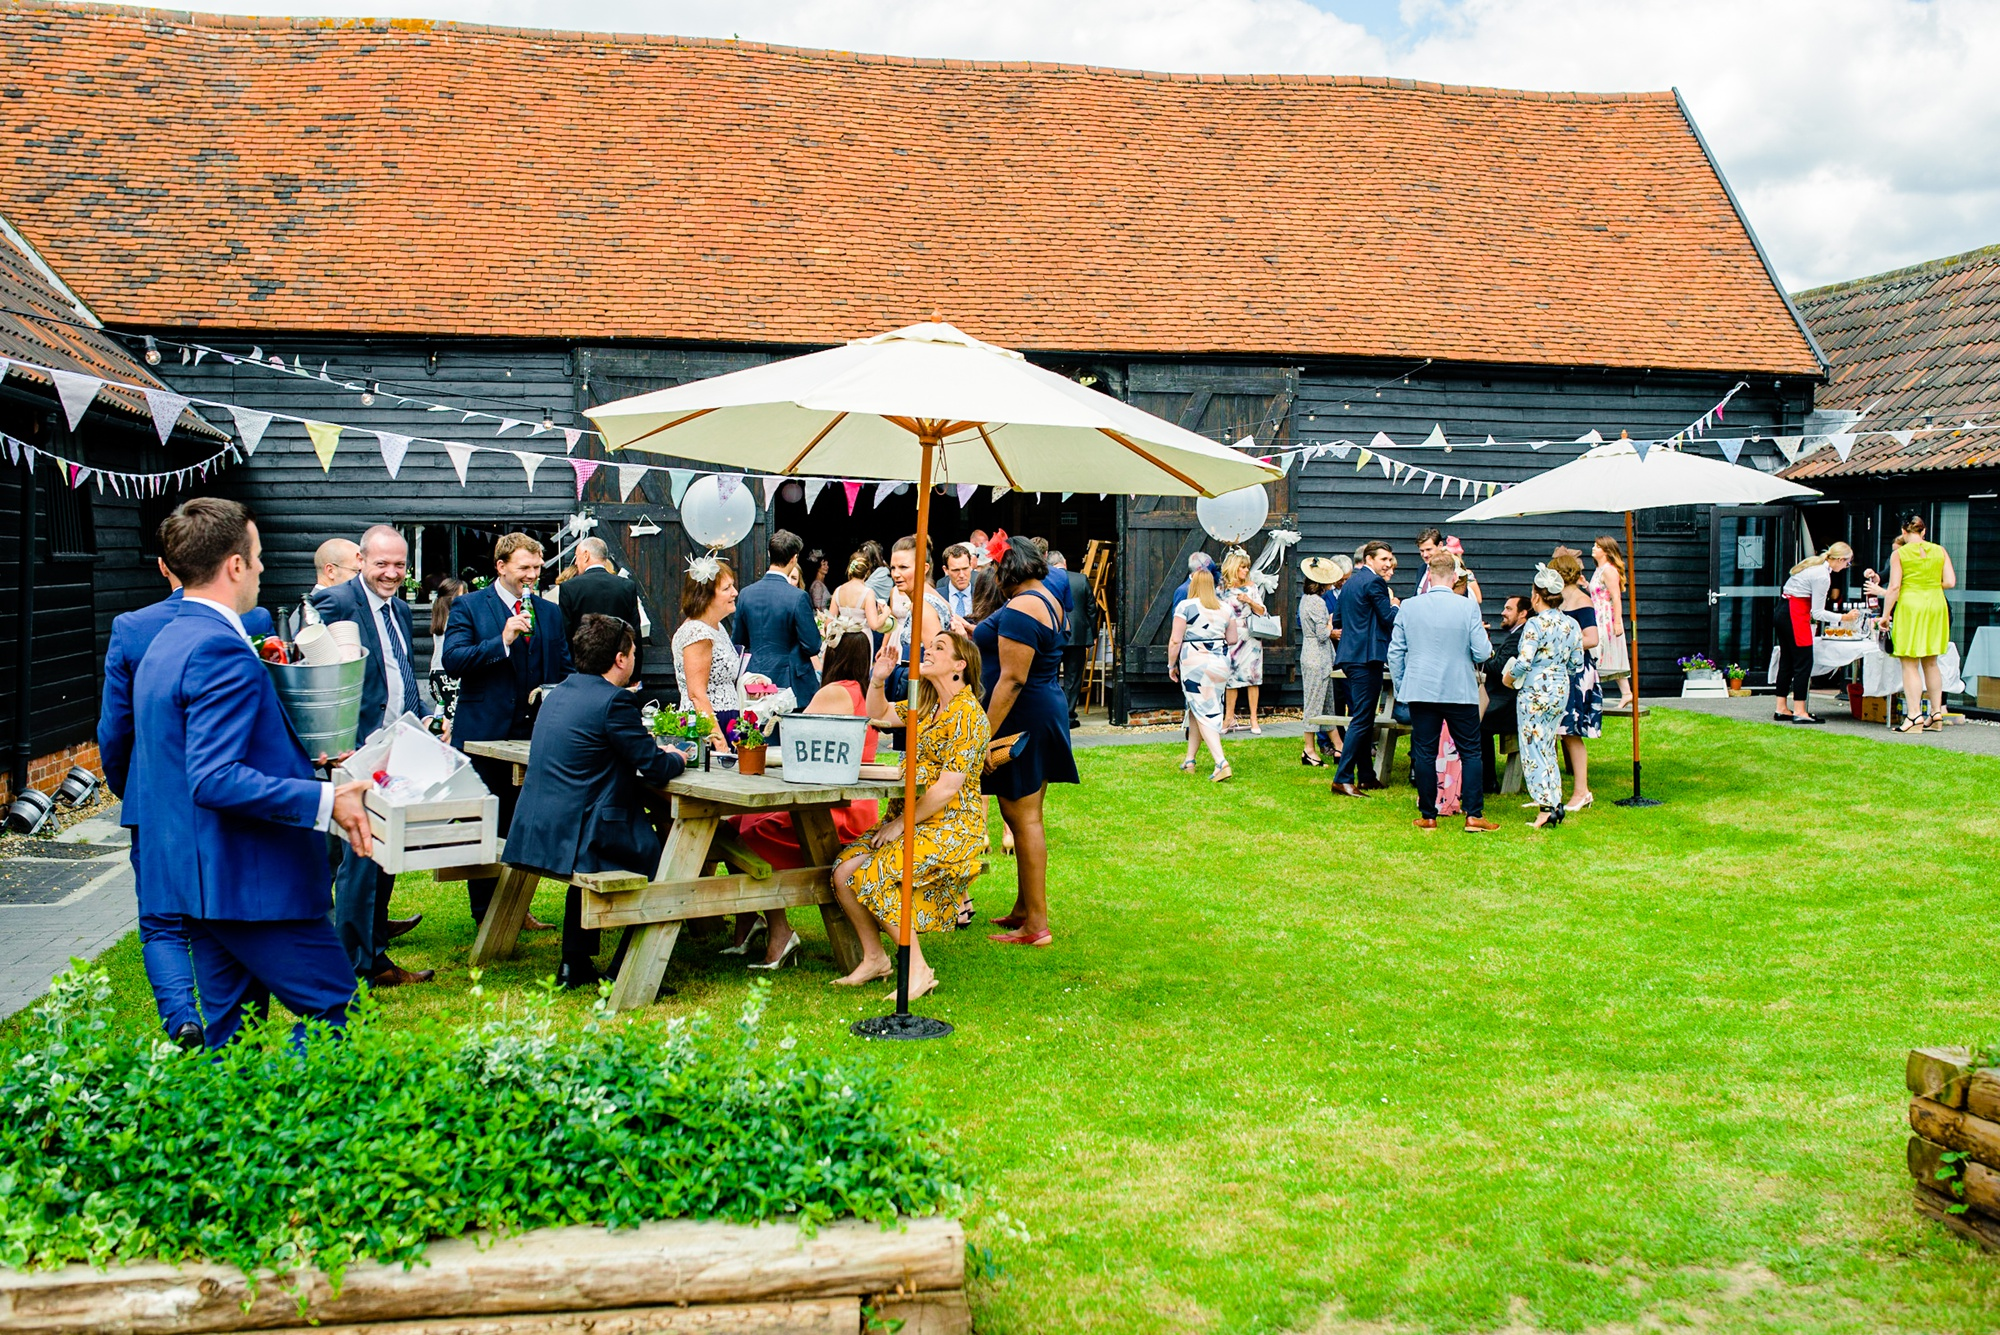 Essex Barn Upminster Wedding Photographer-105.jpg